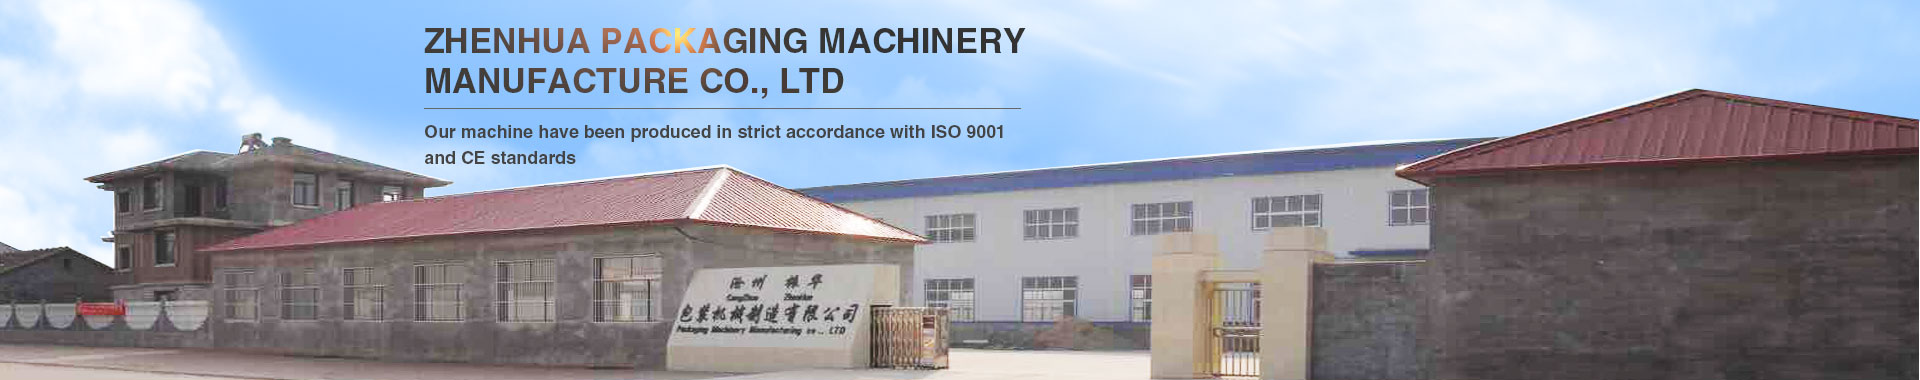 Zhenhua Packaging Machinery Manufacturing Group